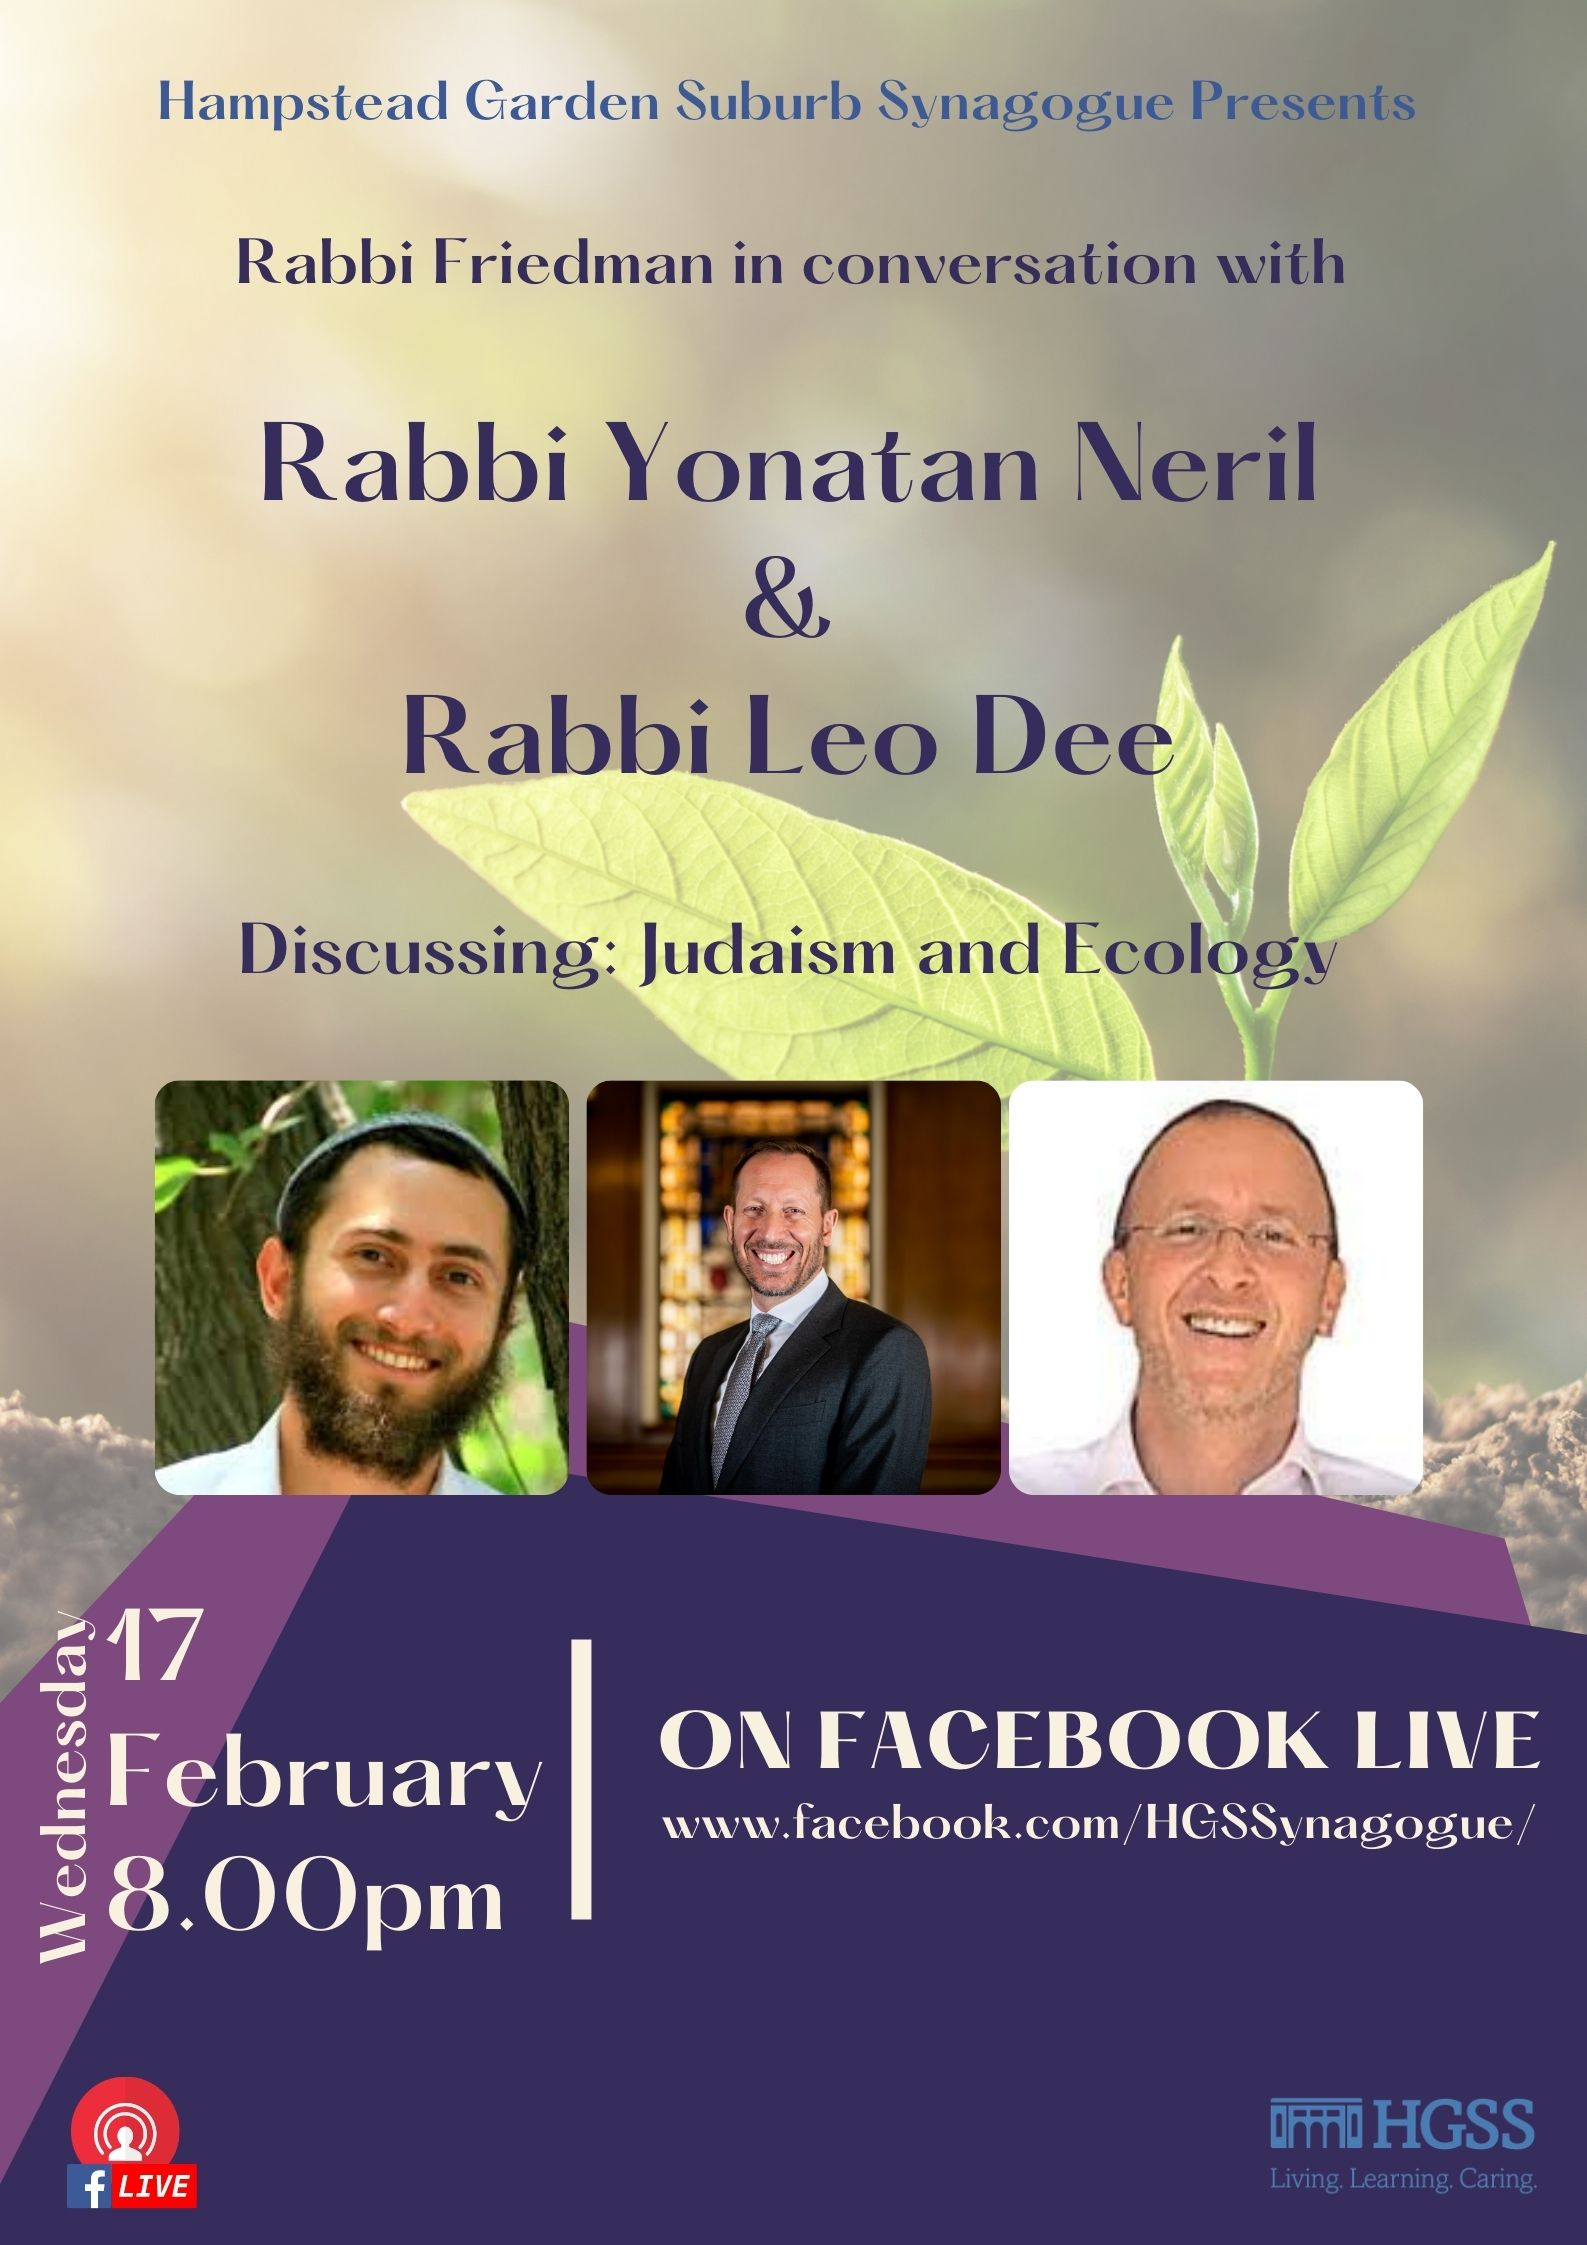 Judaism & Ecology @ Facebook Live